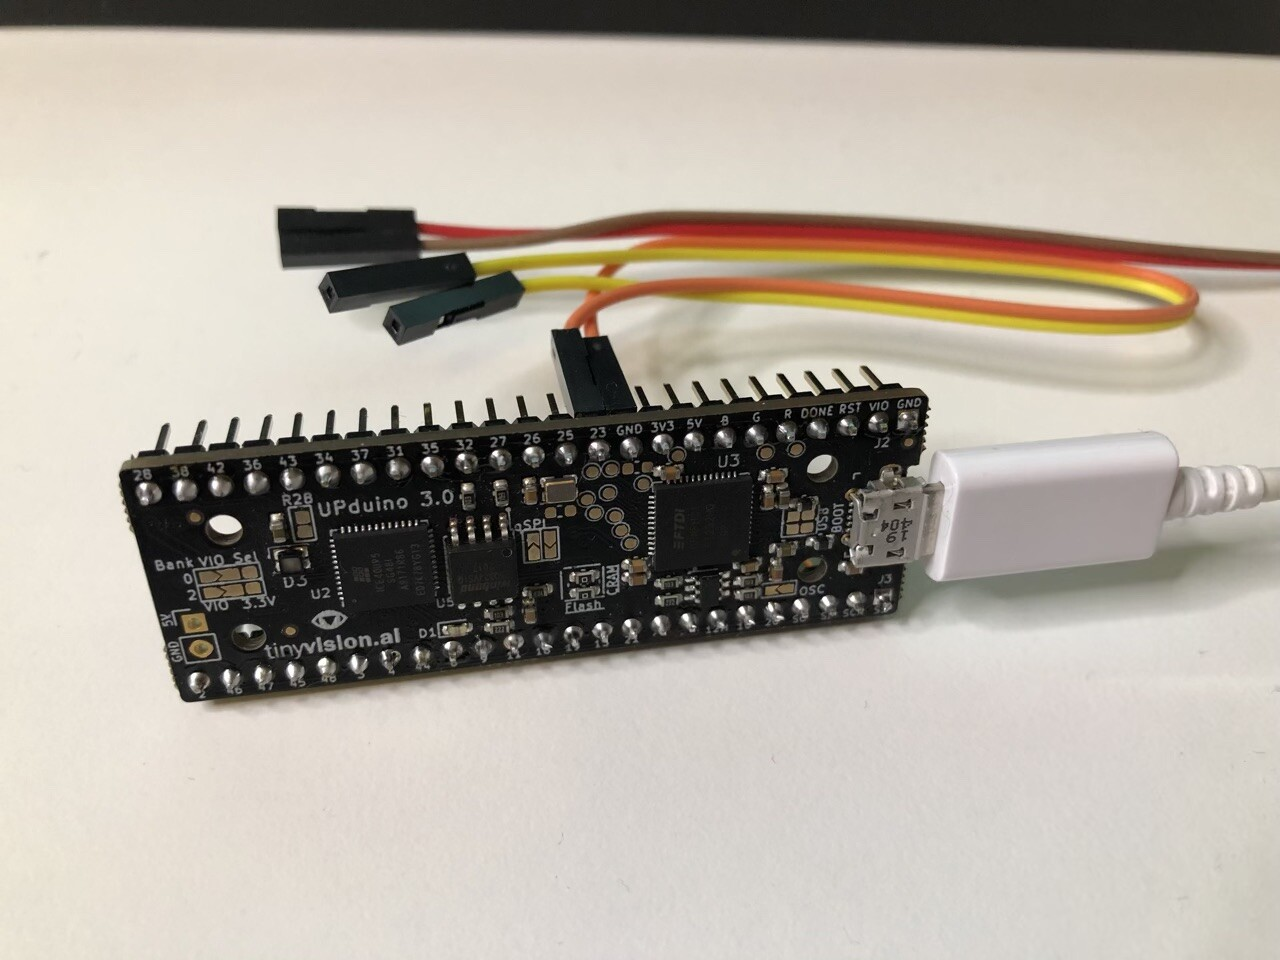 UPduino V3 board with TMS9900 core